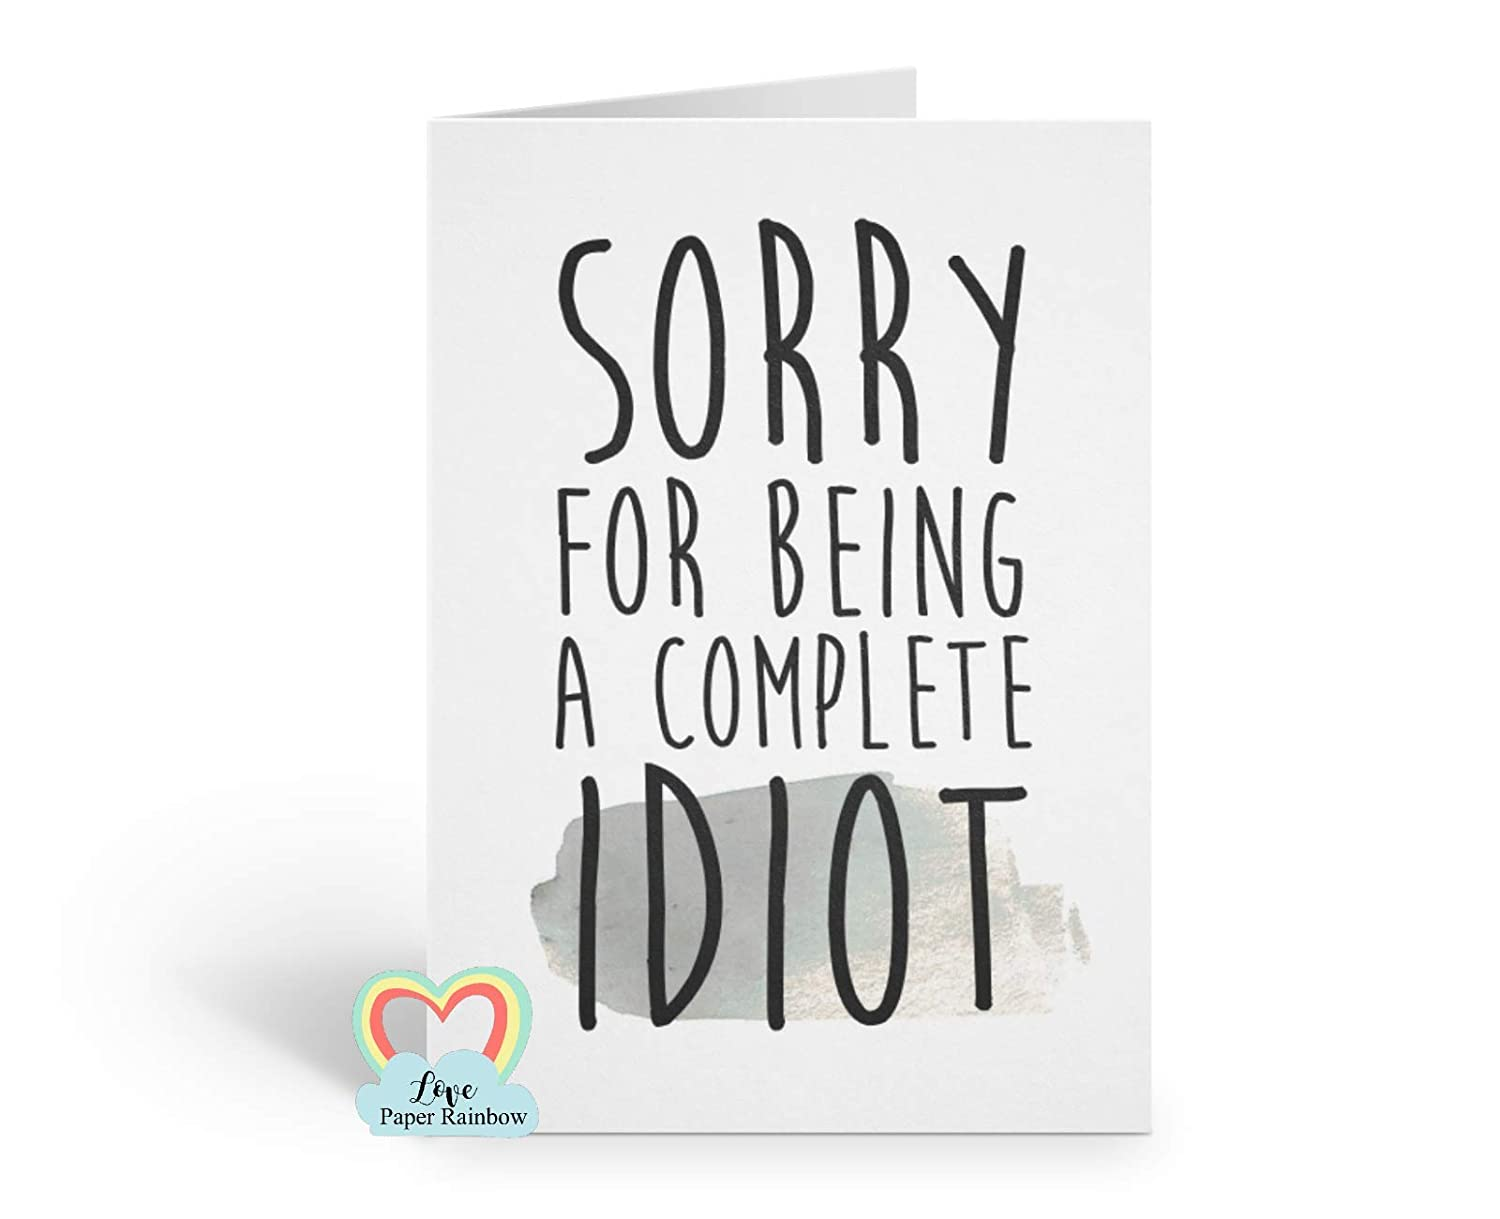 funny sorry card, sorry for being a complete idiot, idiot card, I'm sorry, sorry card